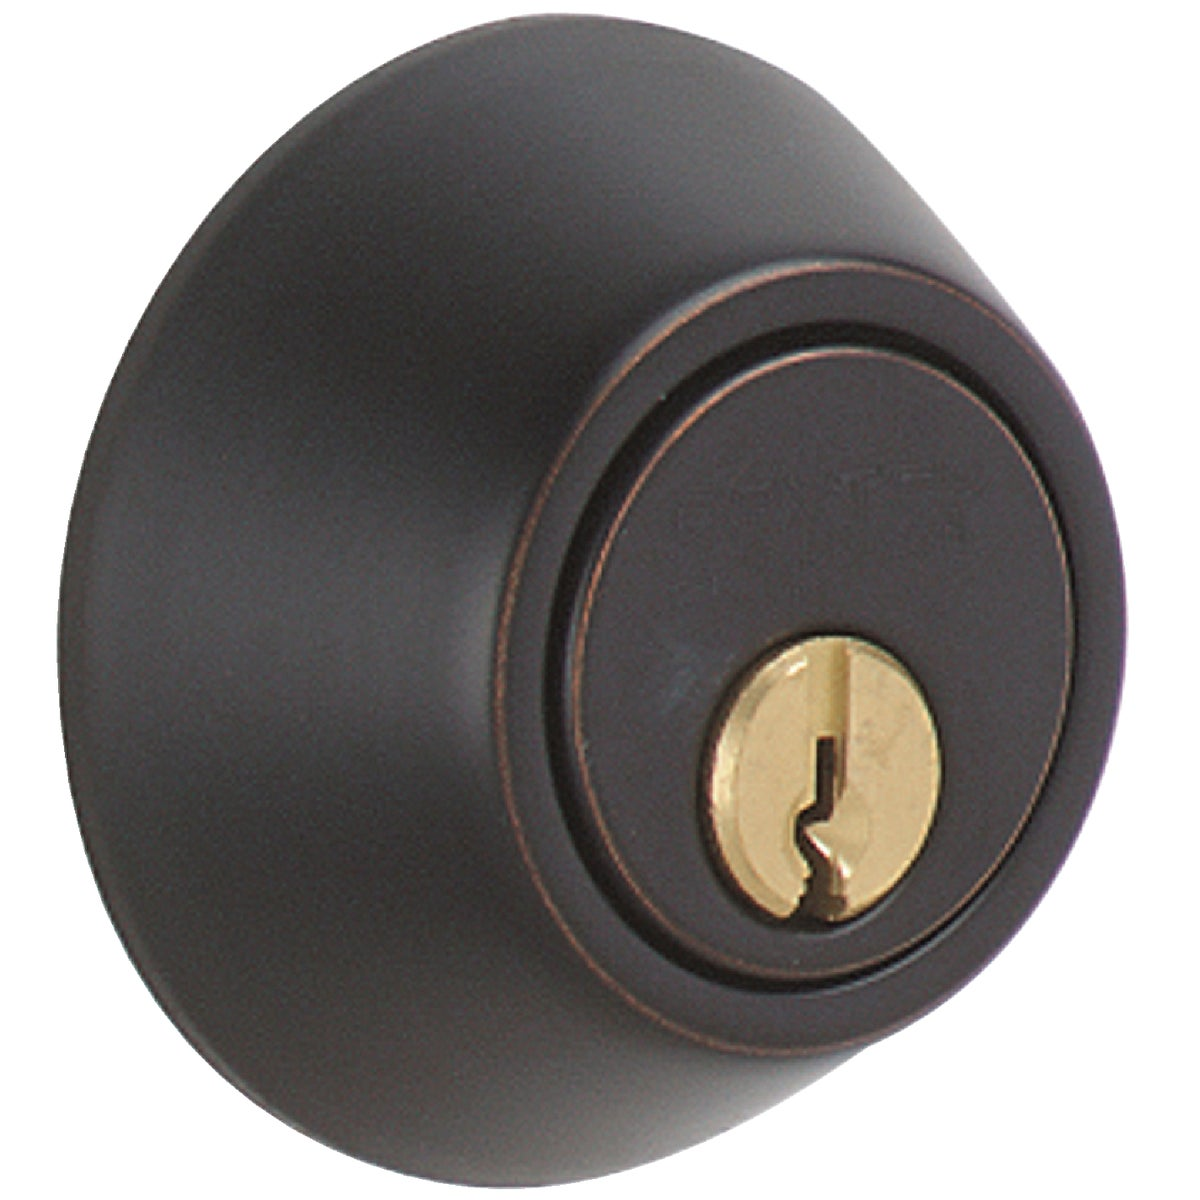 ABRZ 1CYL DEADBOLT - JD60V716 by Schlage Lock Co